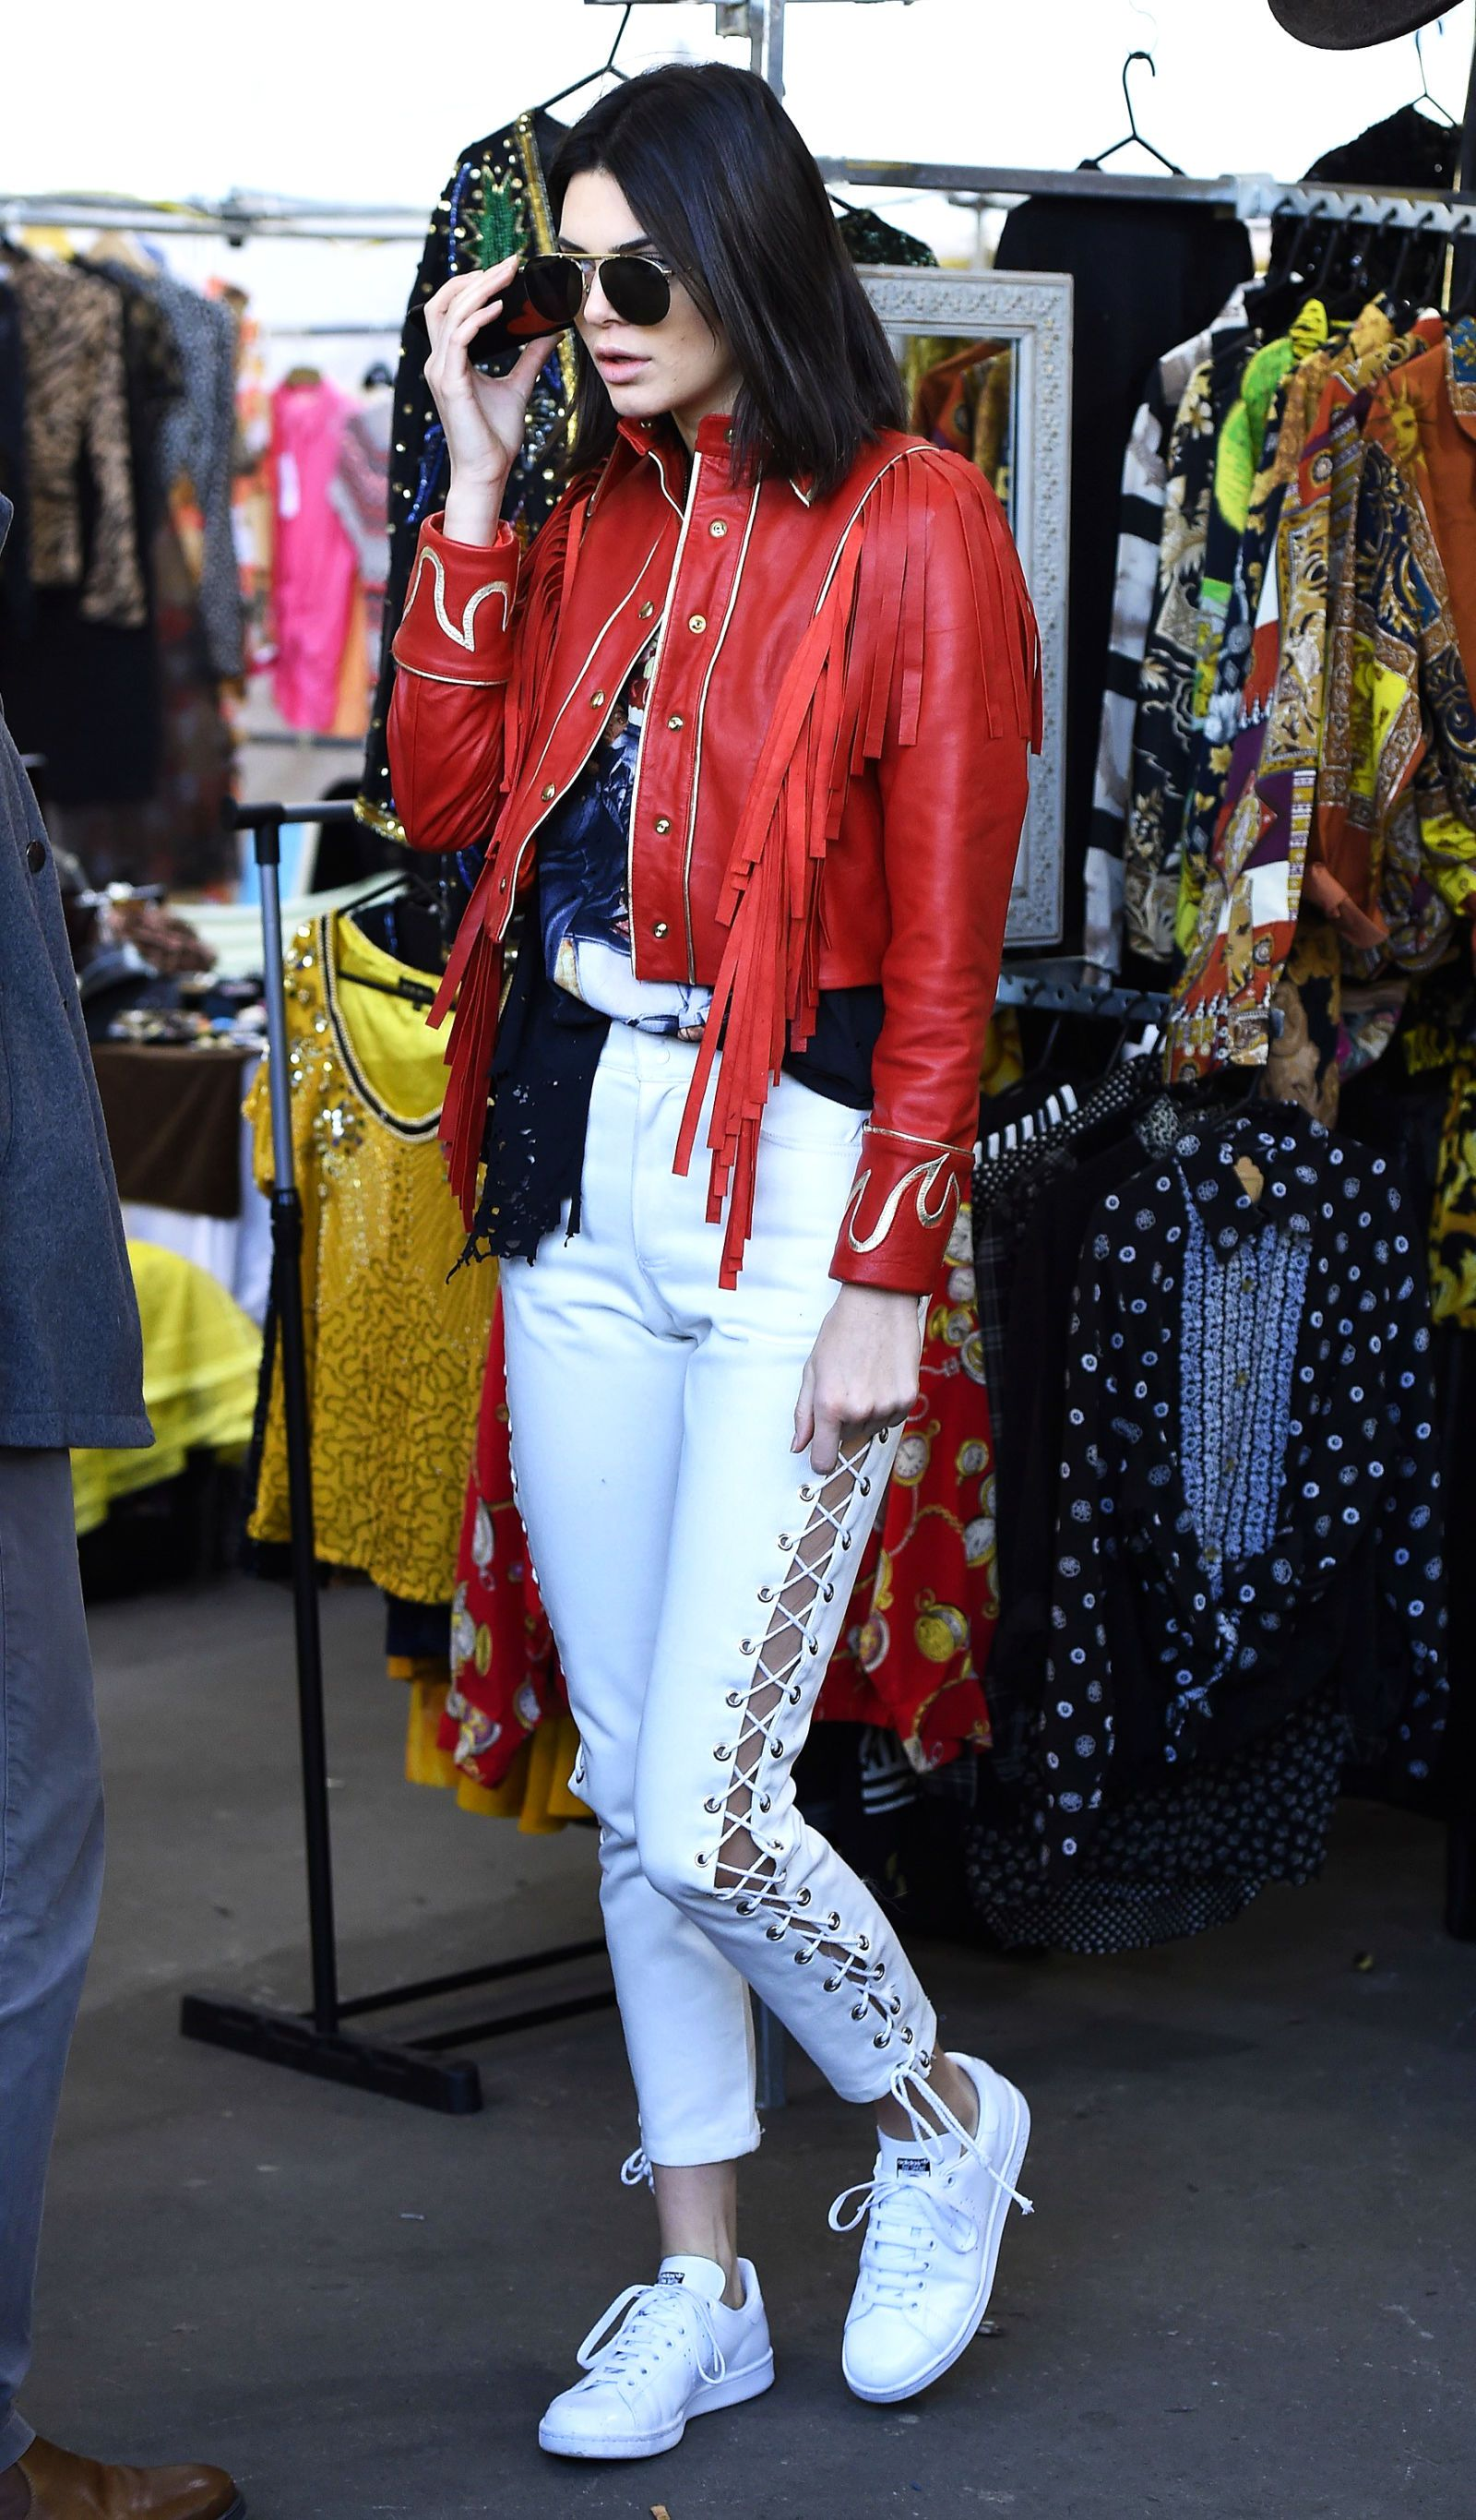 ea87968f7e25 Kendall Jenner took her street style game to the next level with white  lace-up pants and a fringe red leather jacket.